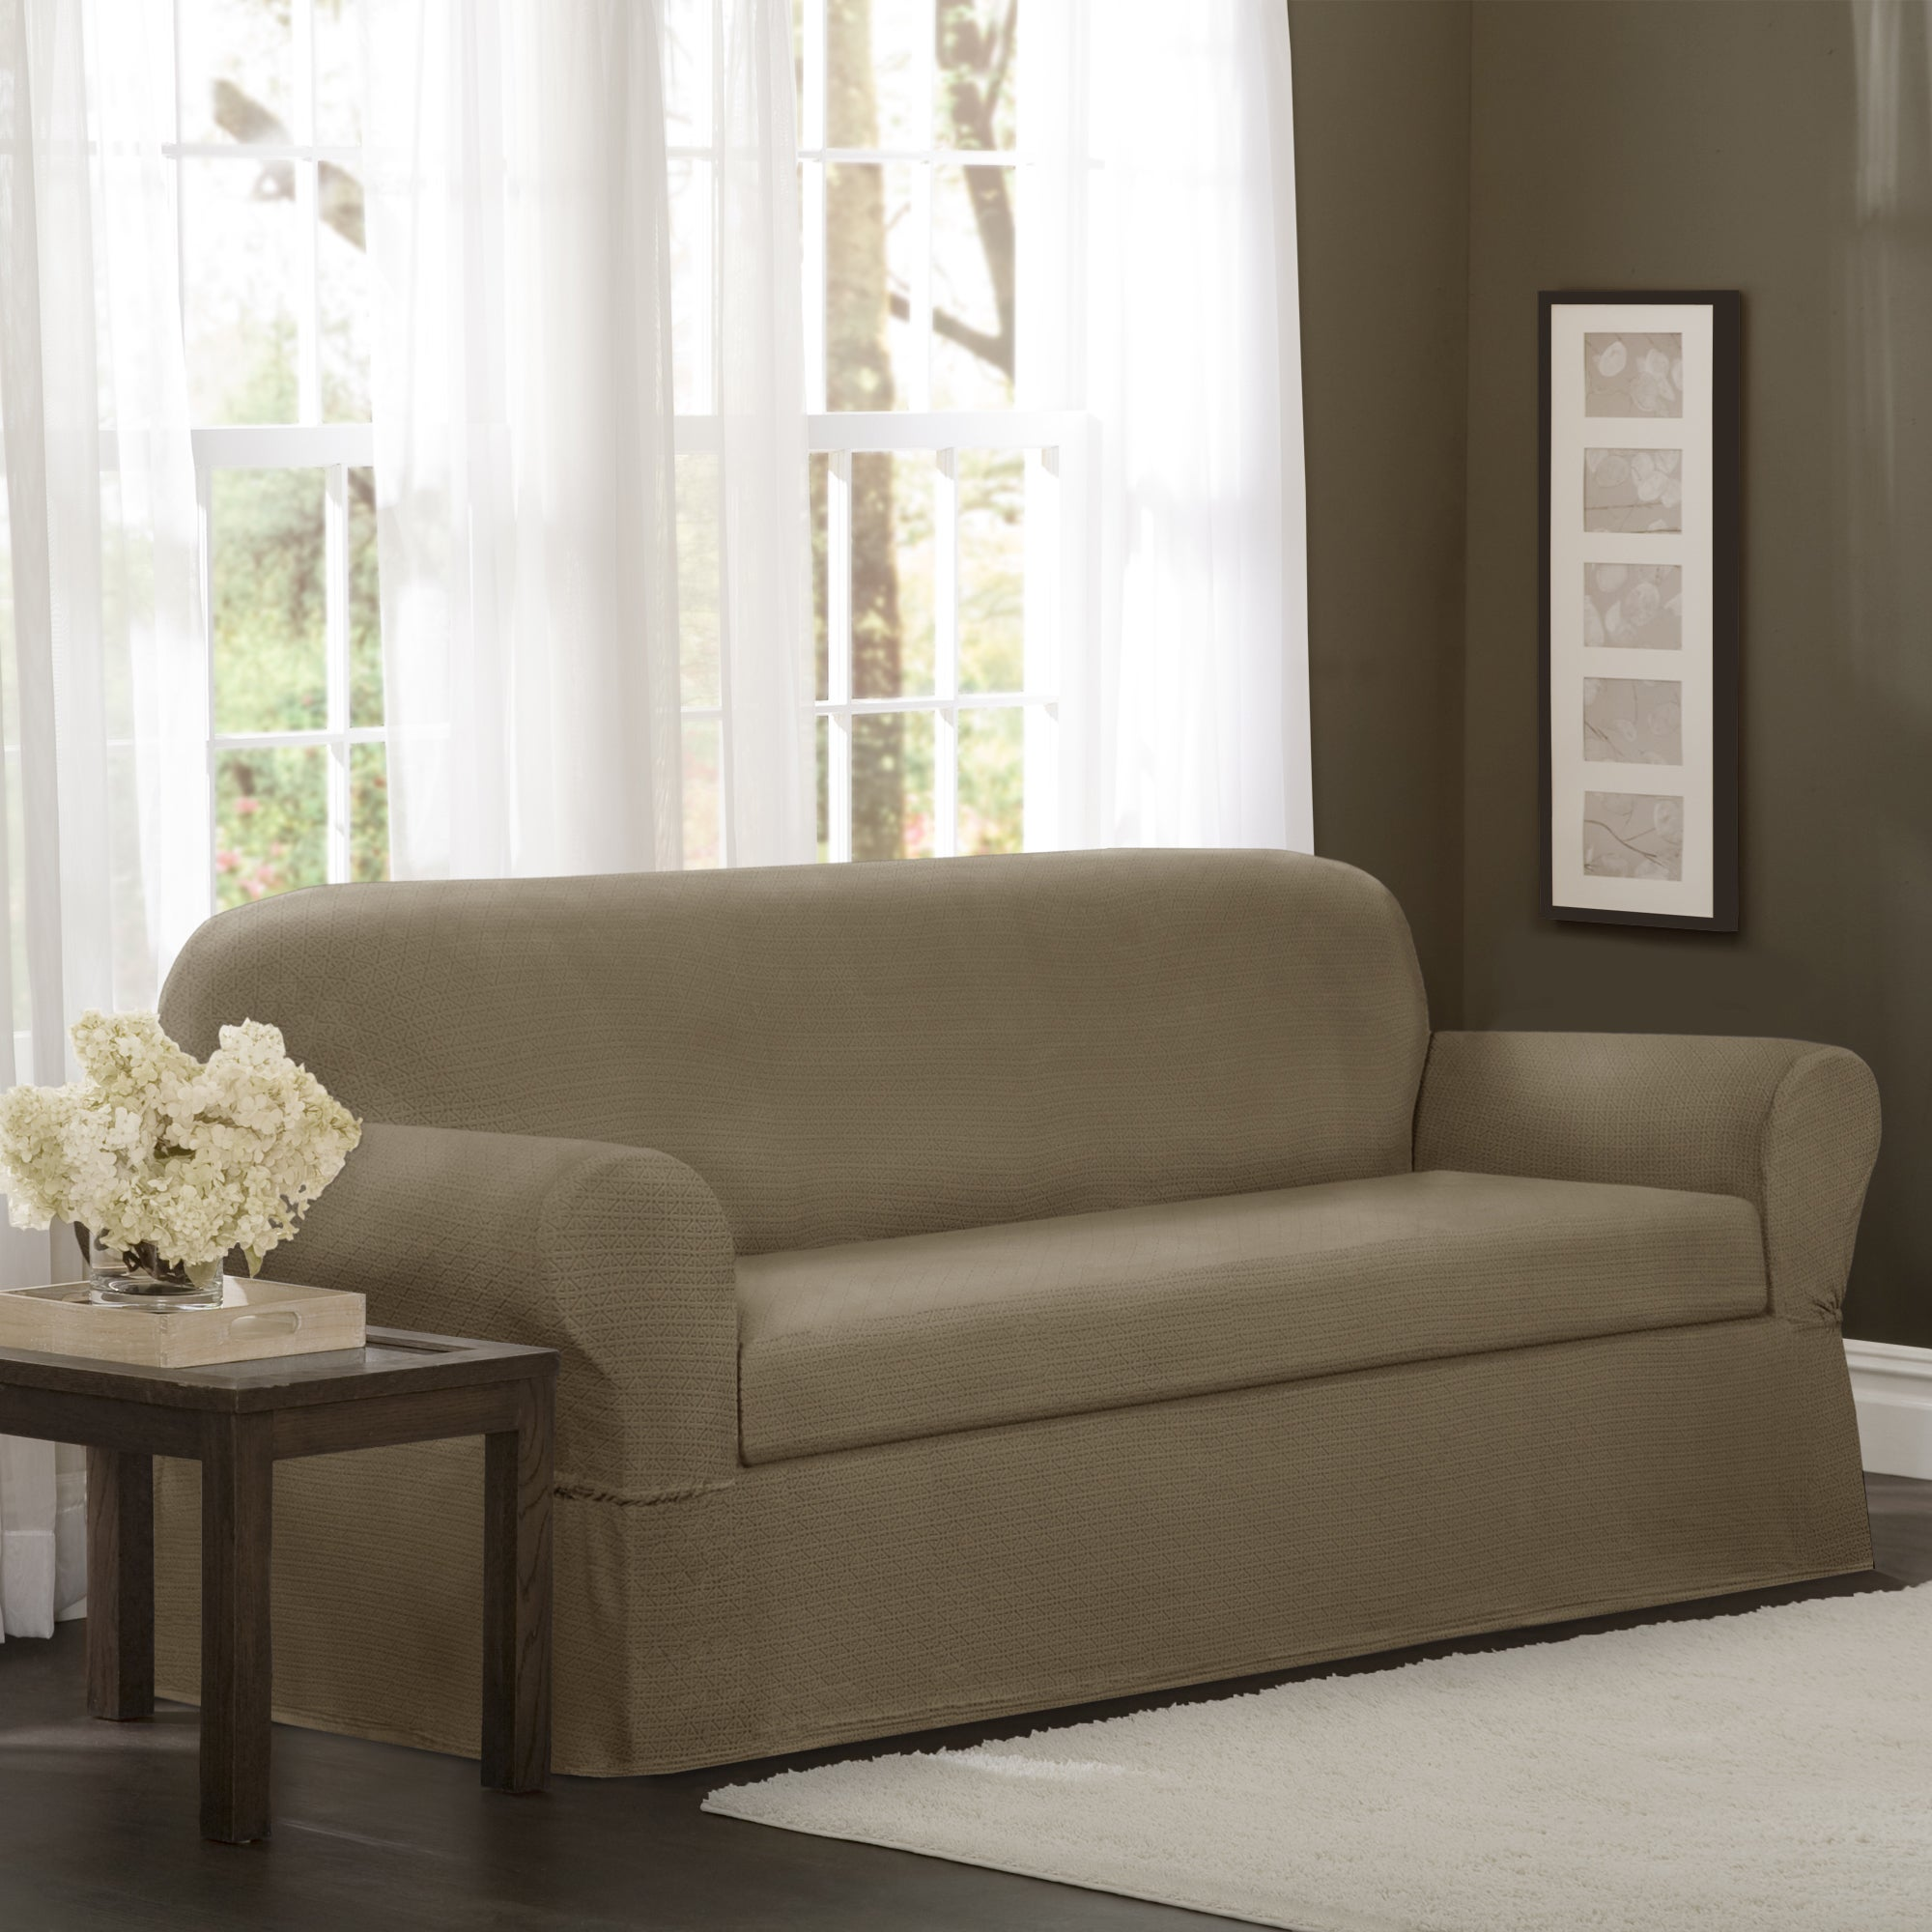 Shop Maytex Torie 2-piece Stretch Sofa Slipcover - On Sale - Free ...